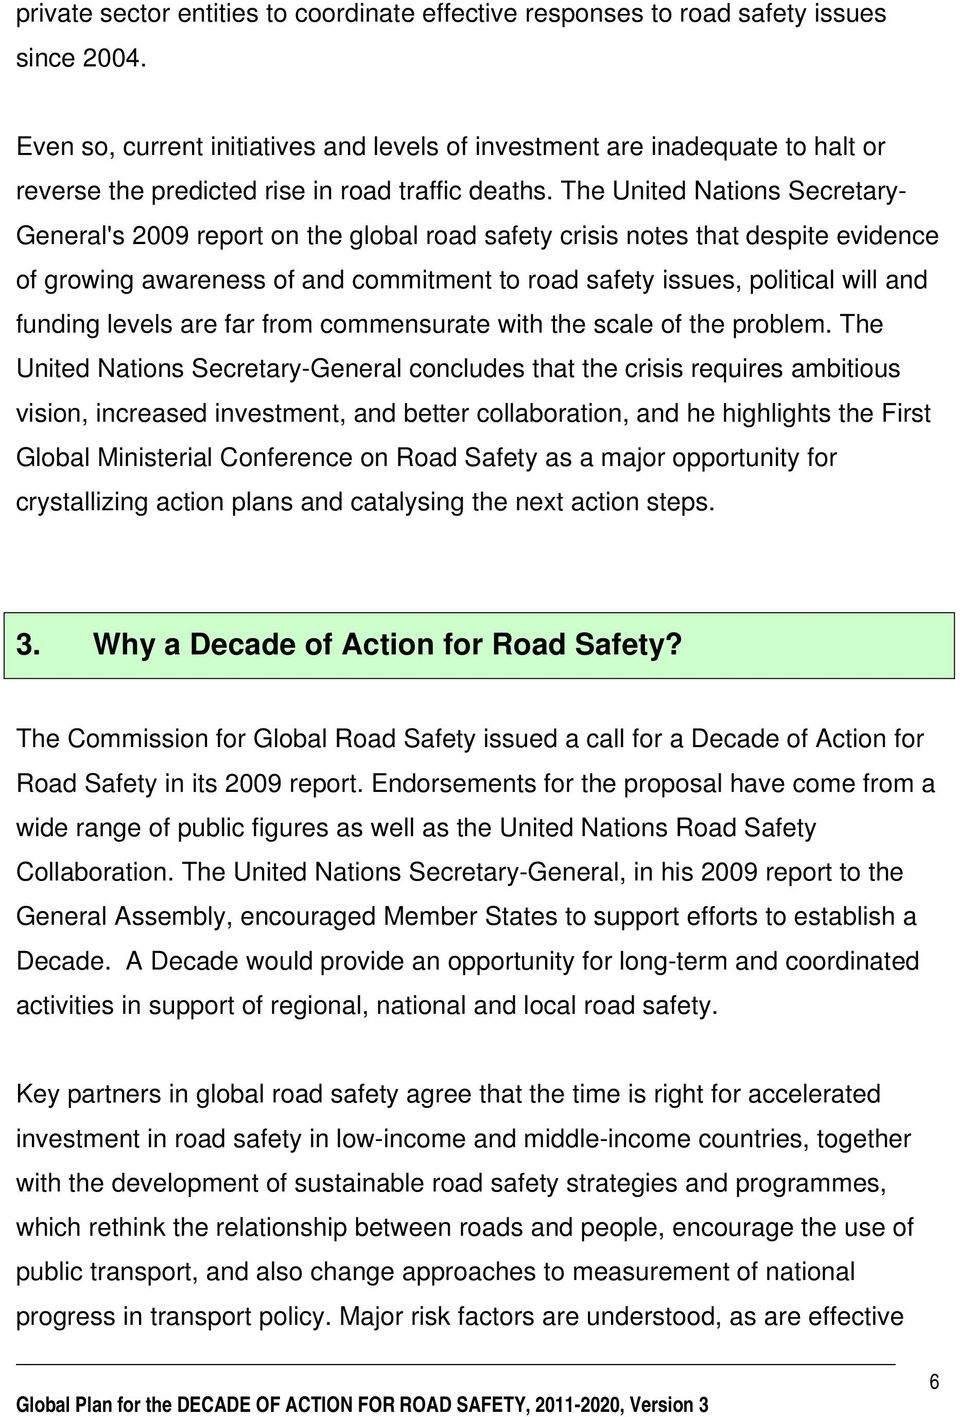 The United Nations Secretary- General's 2009 report on the global road safety crisis notes that despite evidence of growing awareness of and commitment to road safety issues, political will and